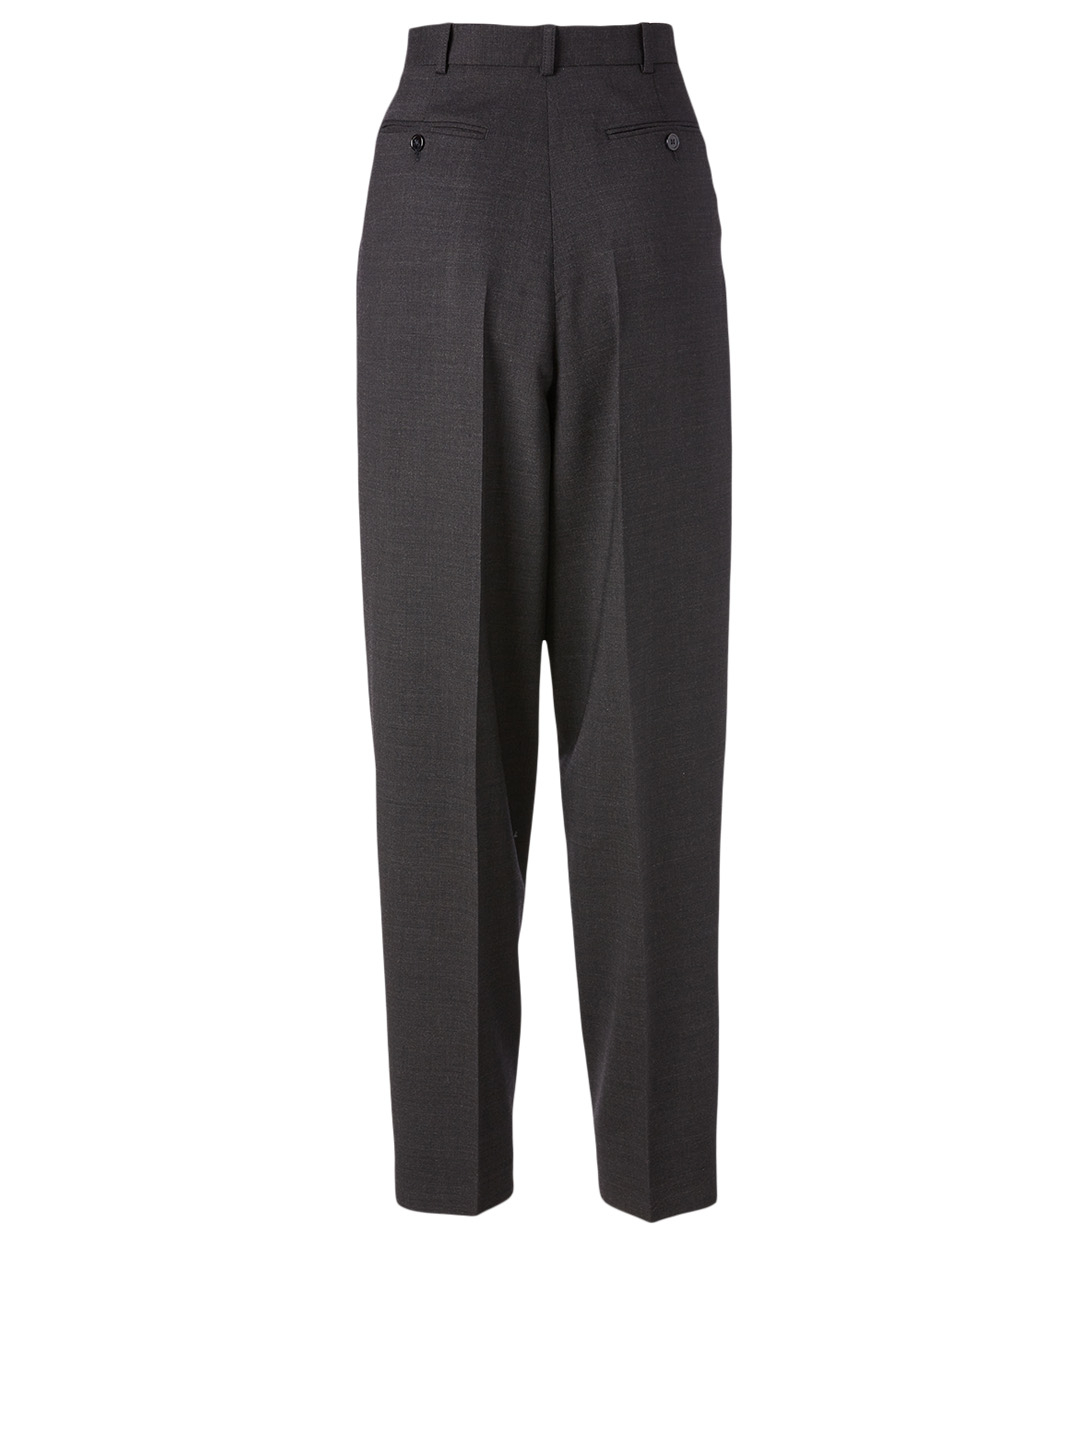 ACNE STUDIOS Wool-Blend Tapered Pants Women's Grey